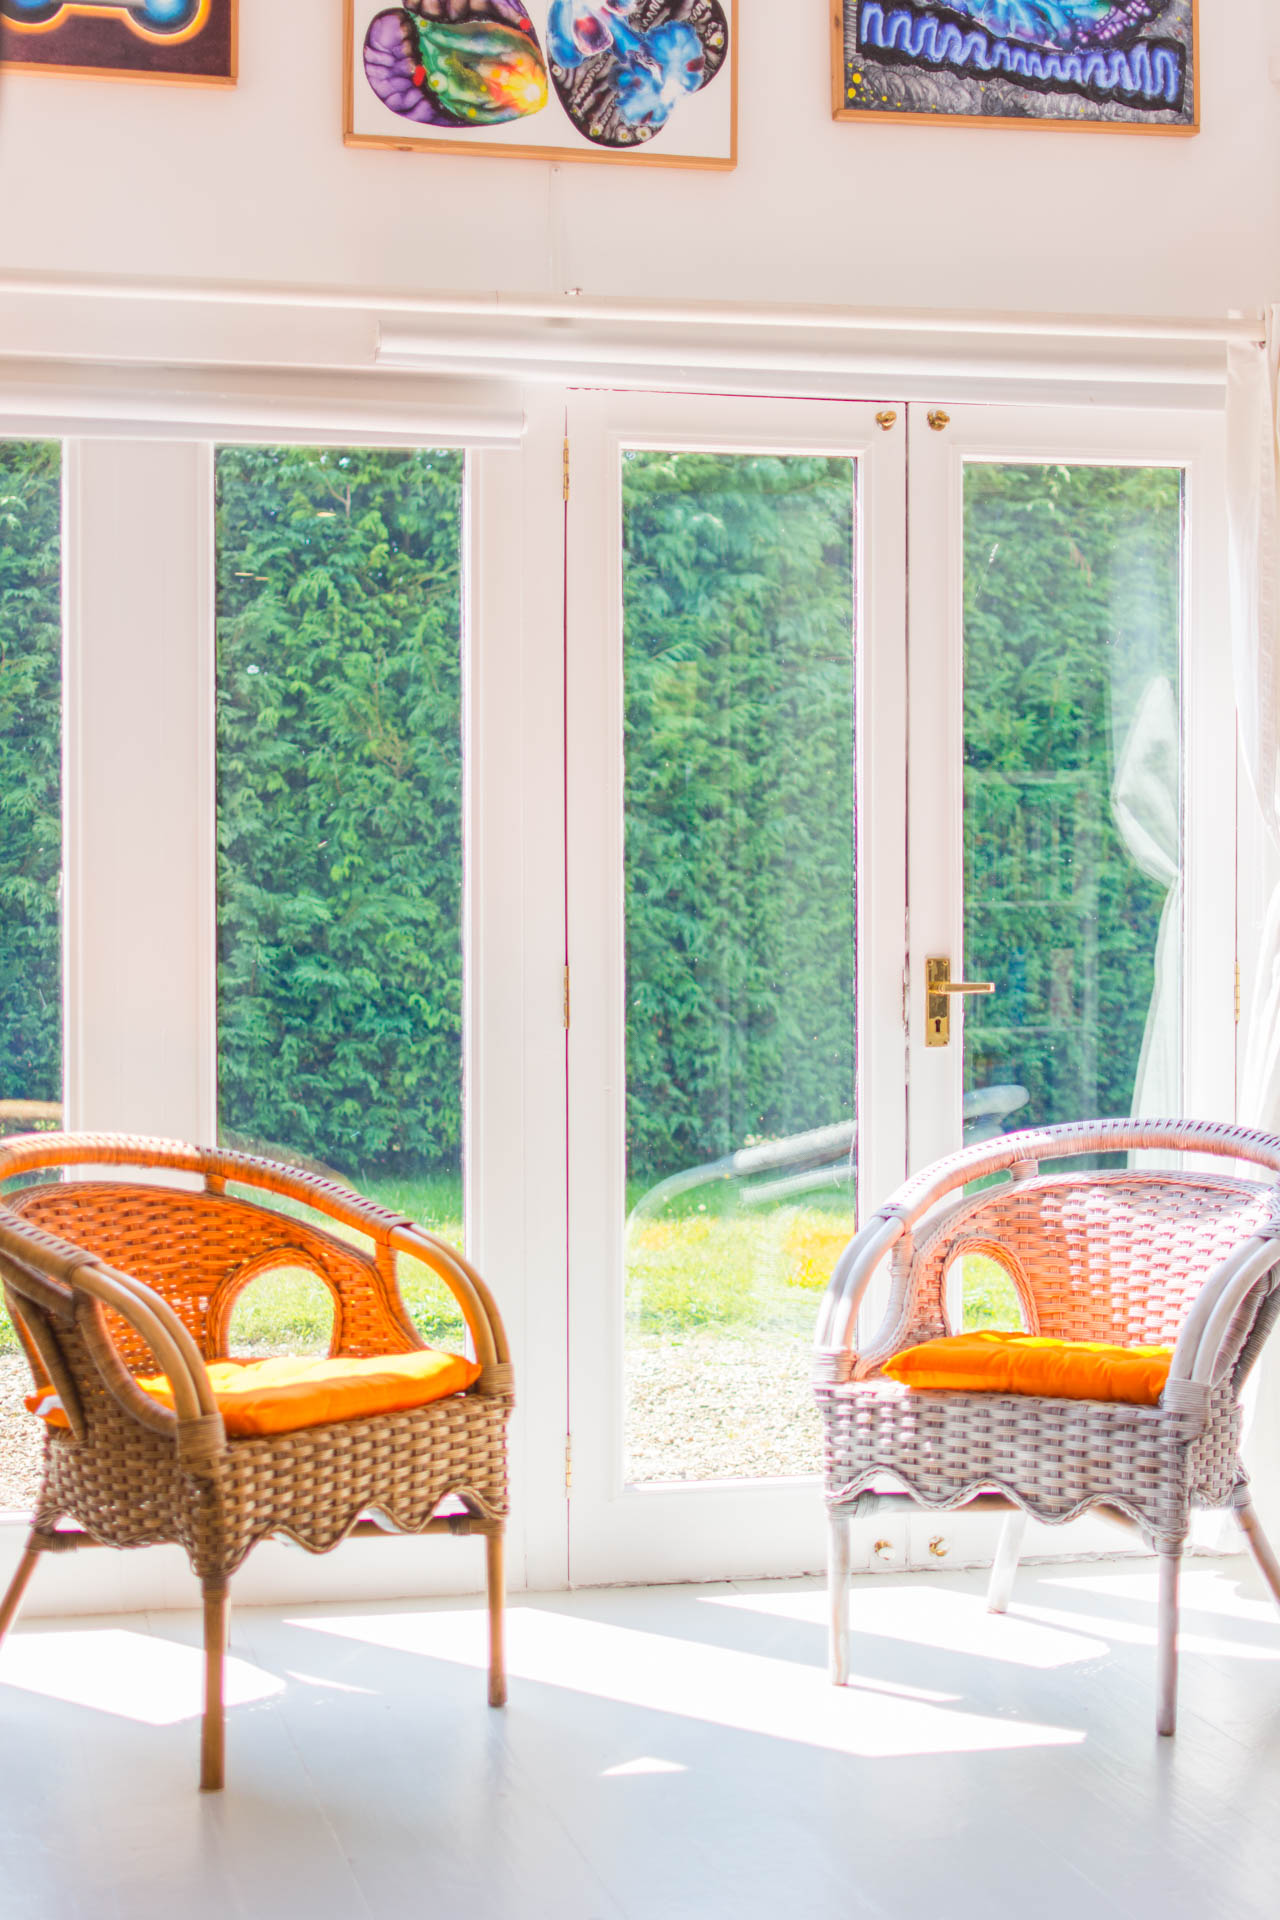 Photo of two chairs in front of glass doors leading out to the garden.